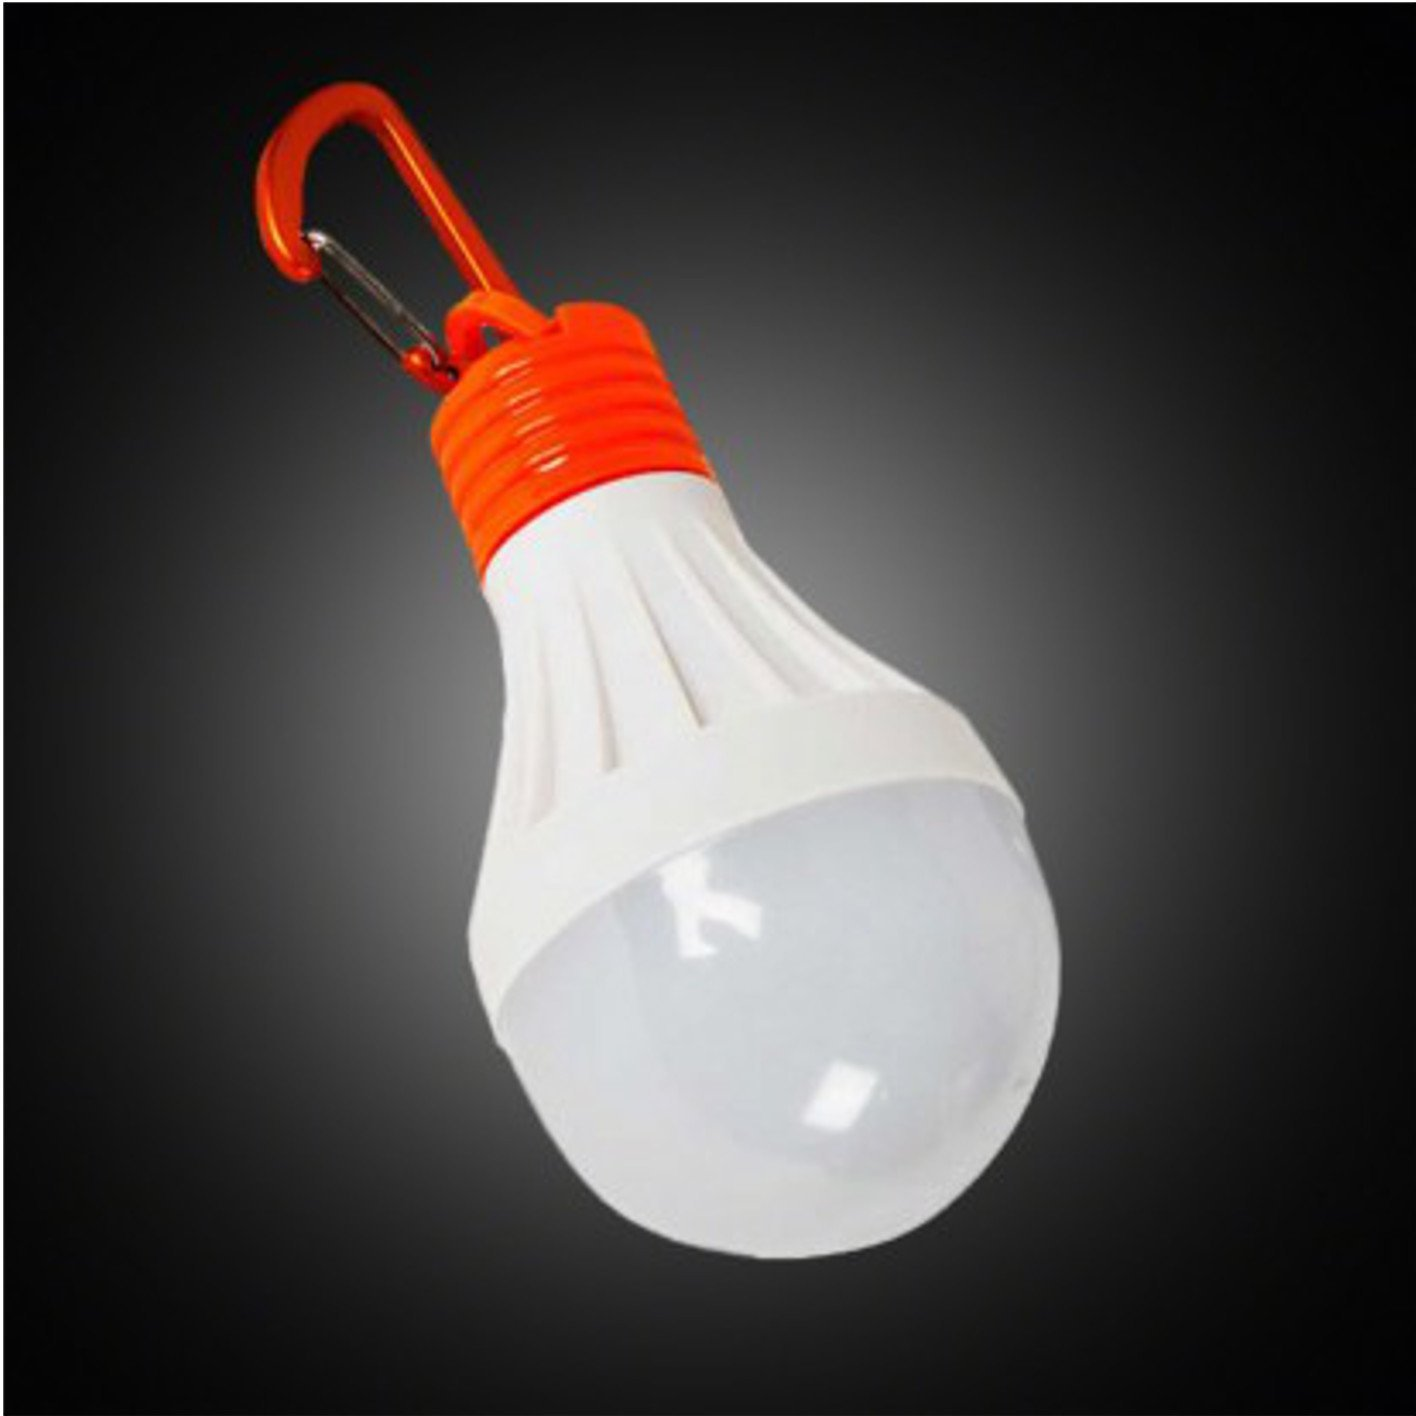 Camping light bulb led portable hanging clip tent eco orb lamp outdoor camping